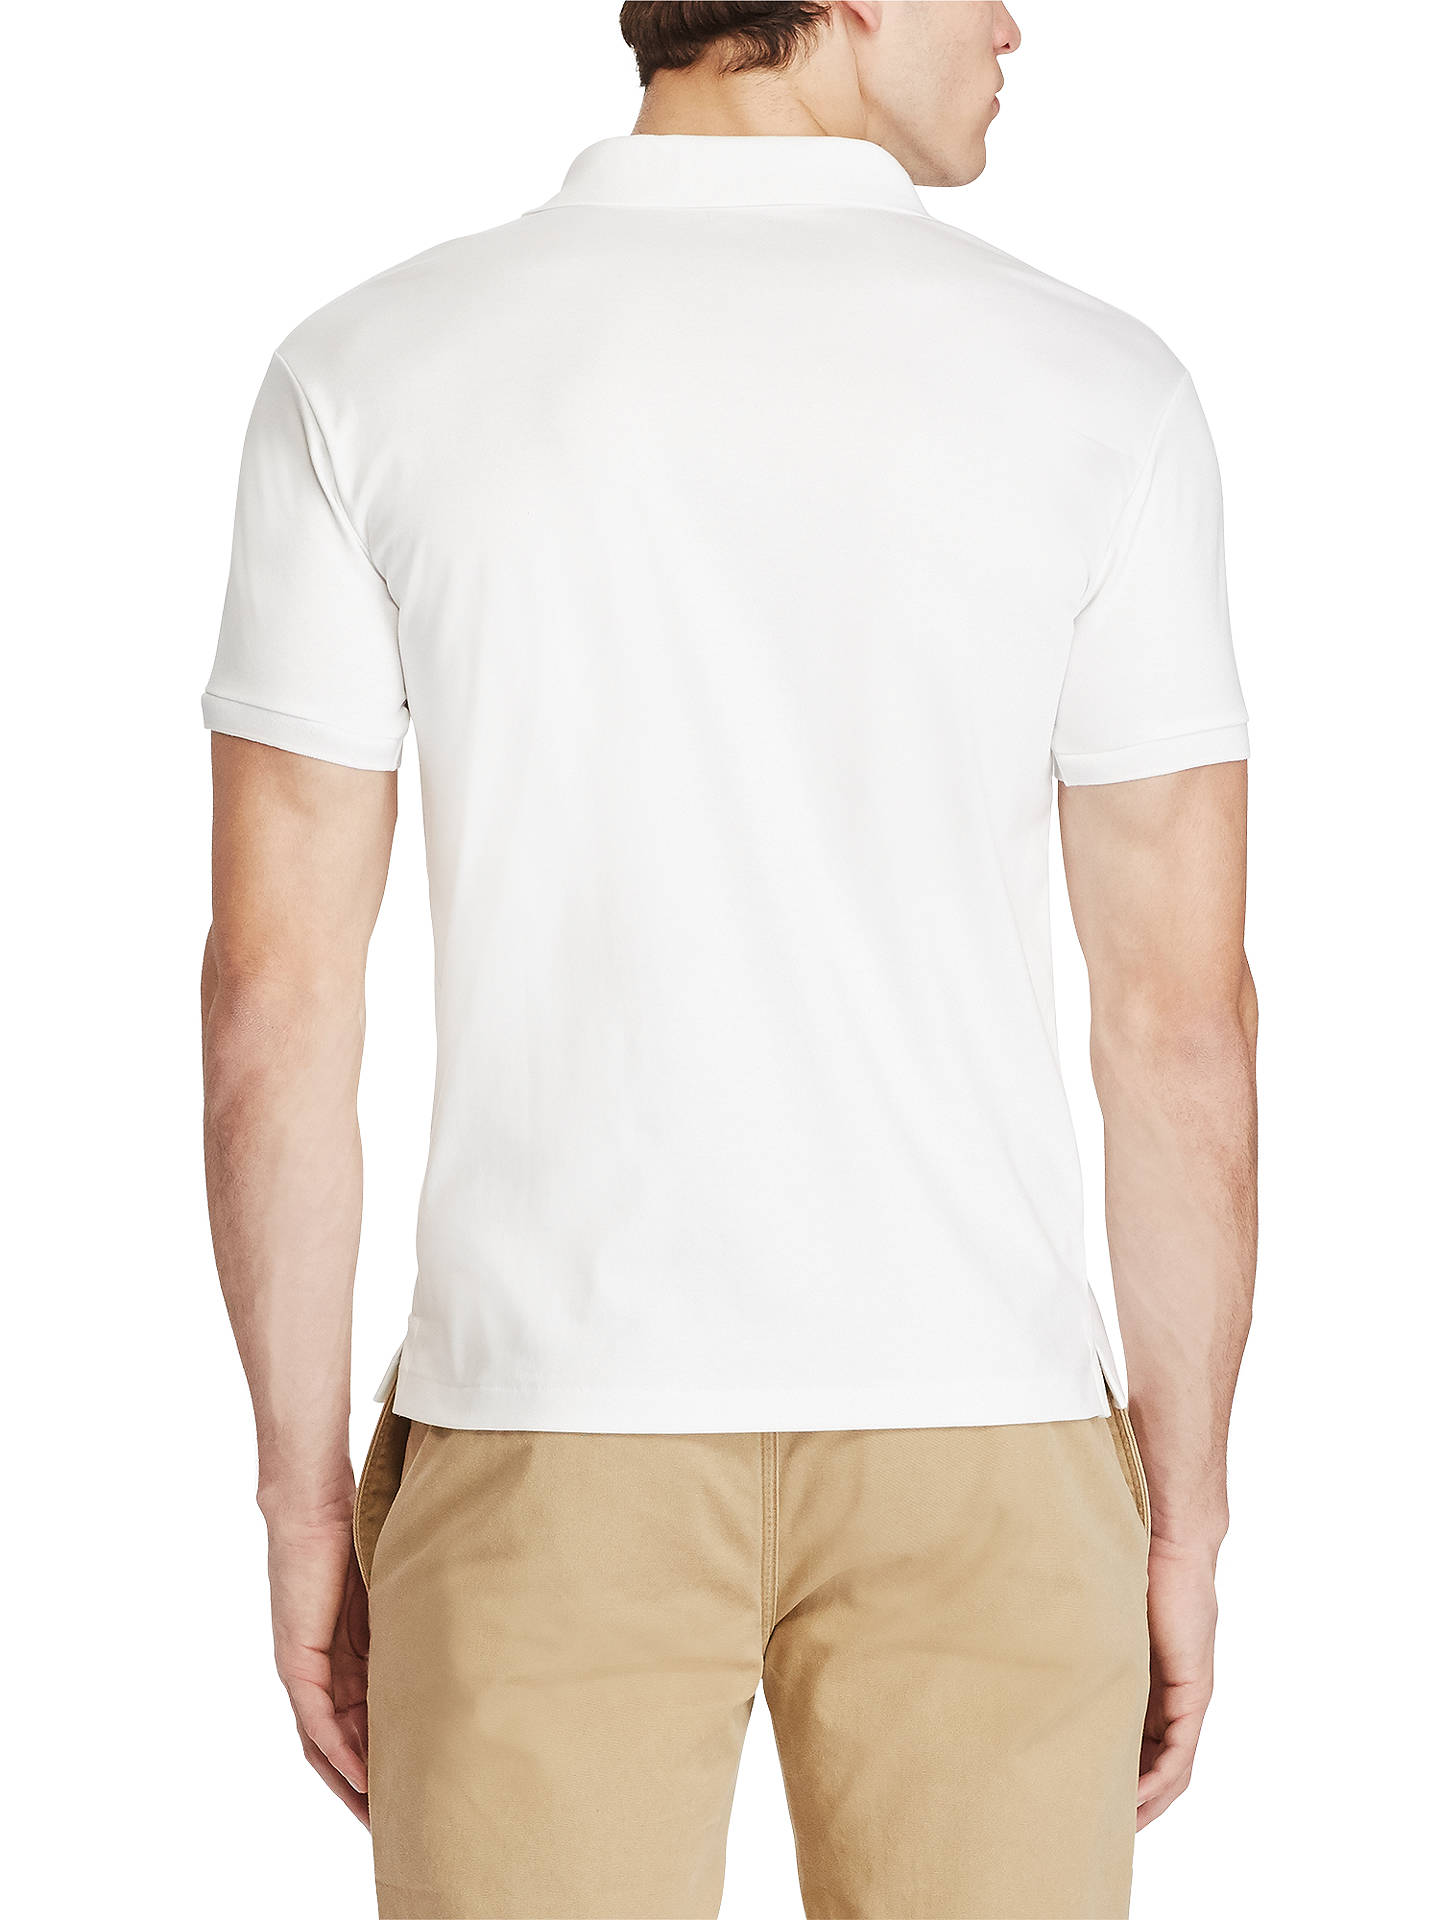 BuyPolo Ralph Lauren Short Sleeve Slim Fit Pima Polo Shirt, White, S Online at johnlewis.com